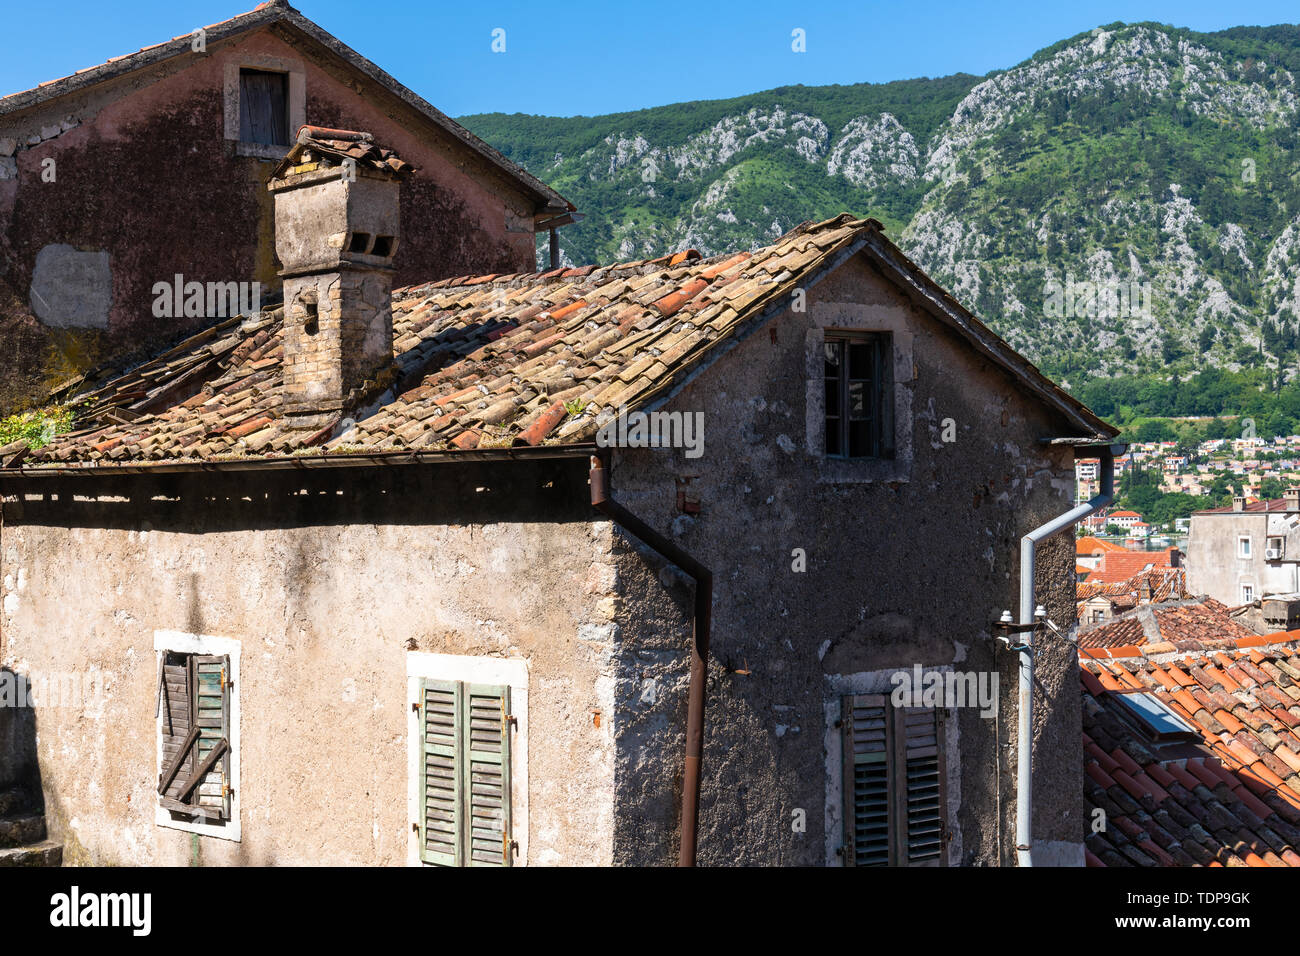 Red tiled roofs of the old town houses in Kotor, Montenegro - Stock Image